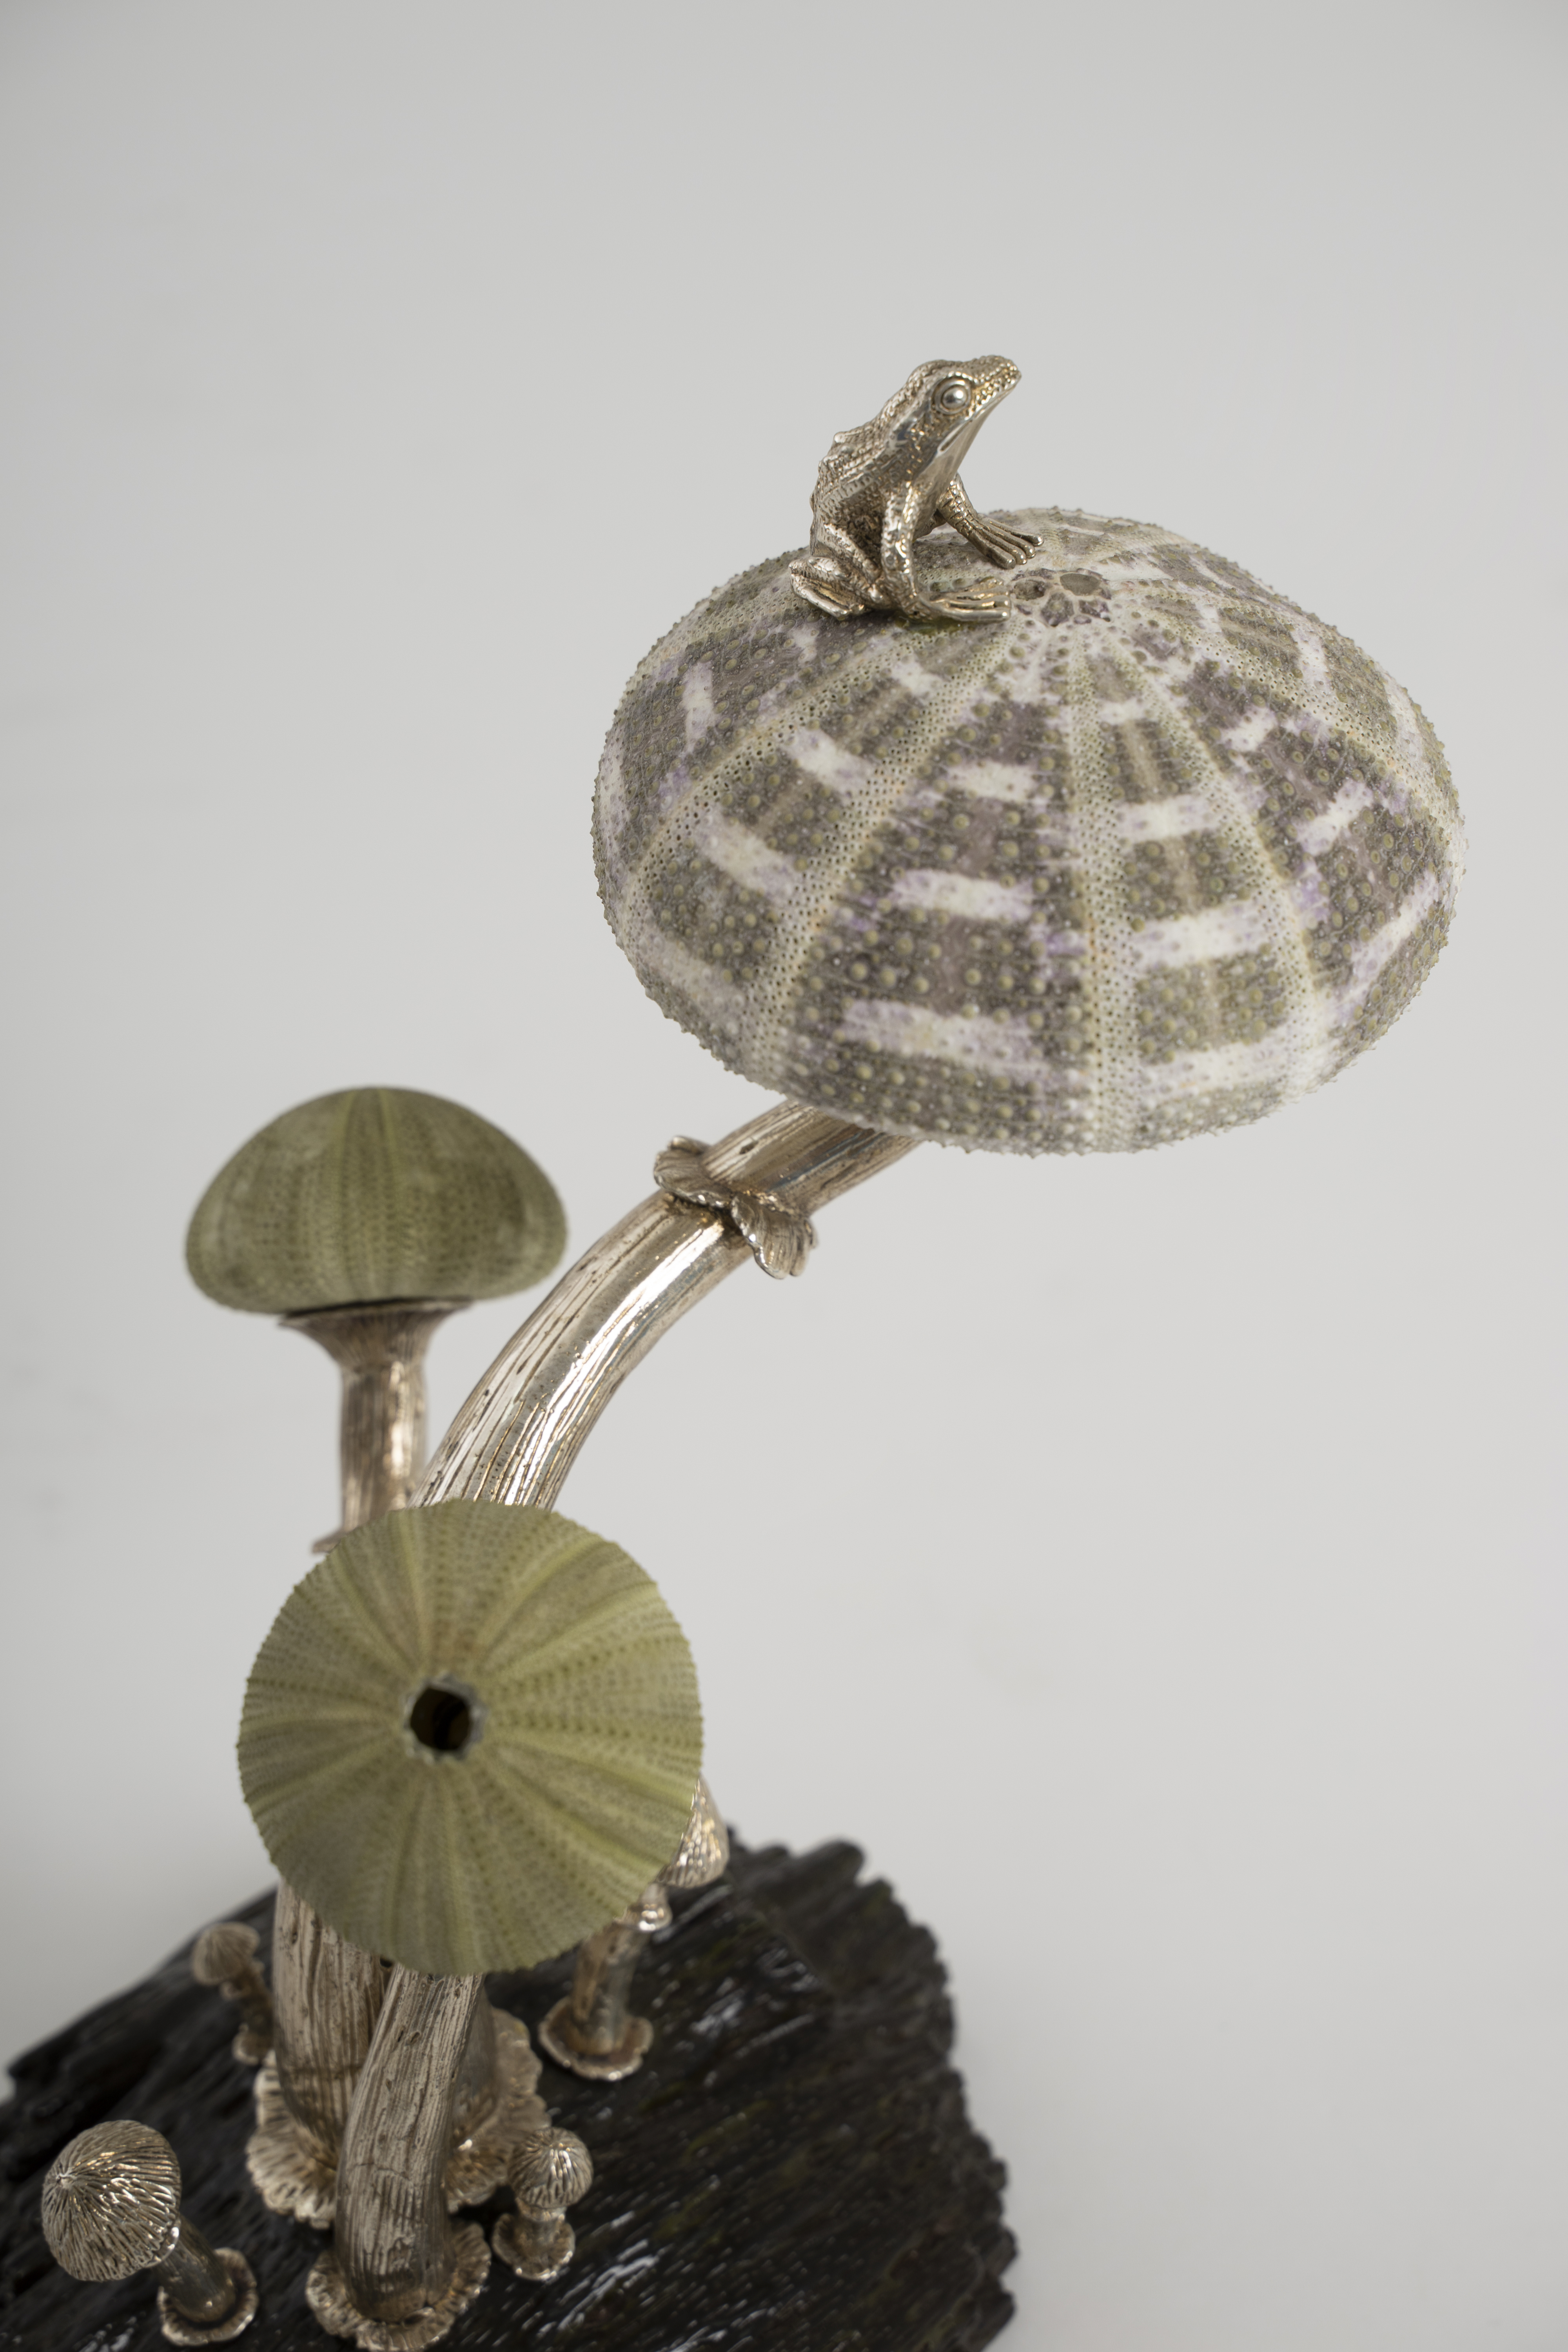 Arden Classic Inc., Home Accessories, Gifts, Sculpture, Natural, Sea Shells, Solid Brass, Brass